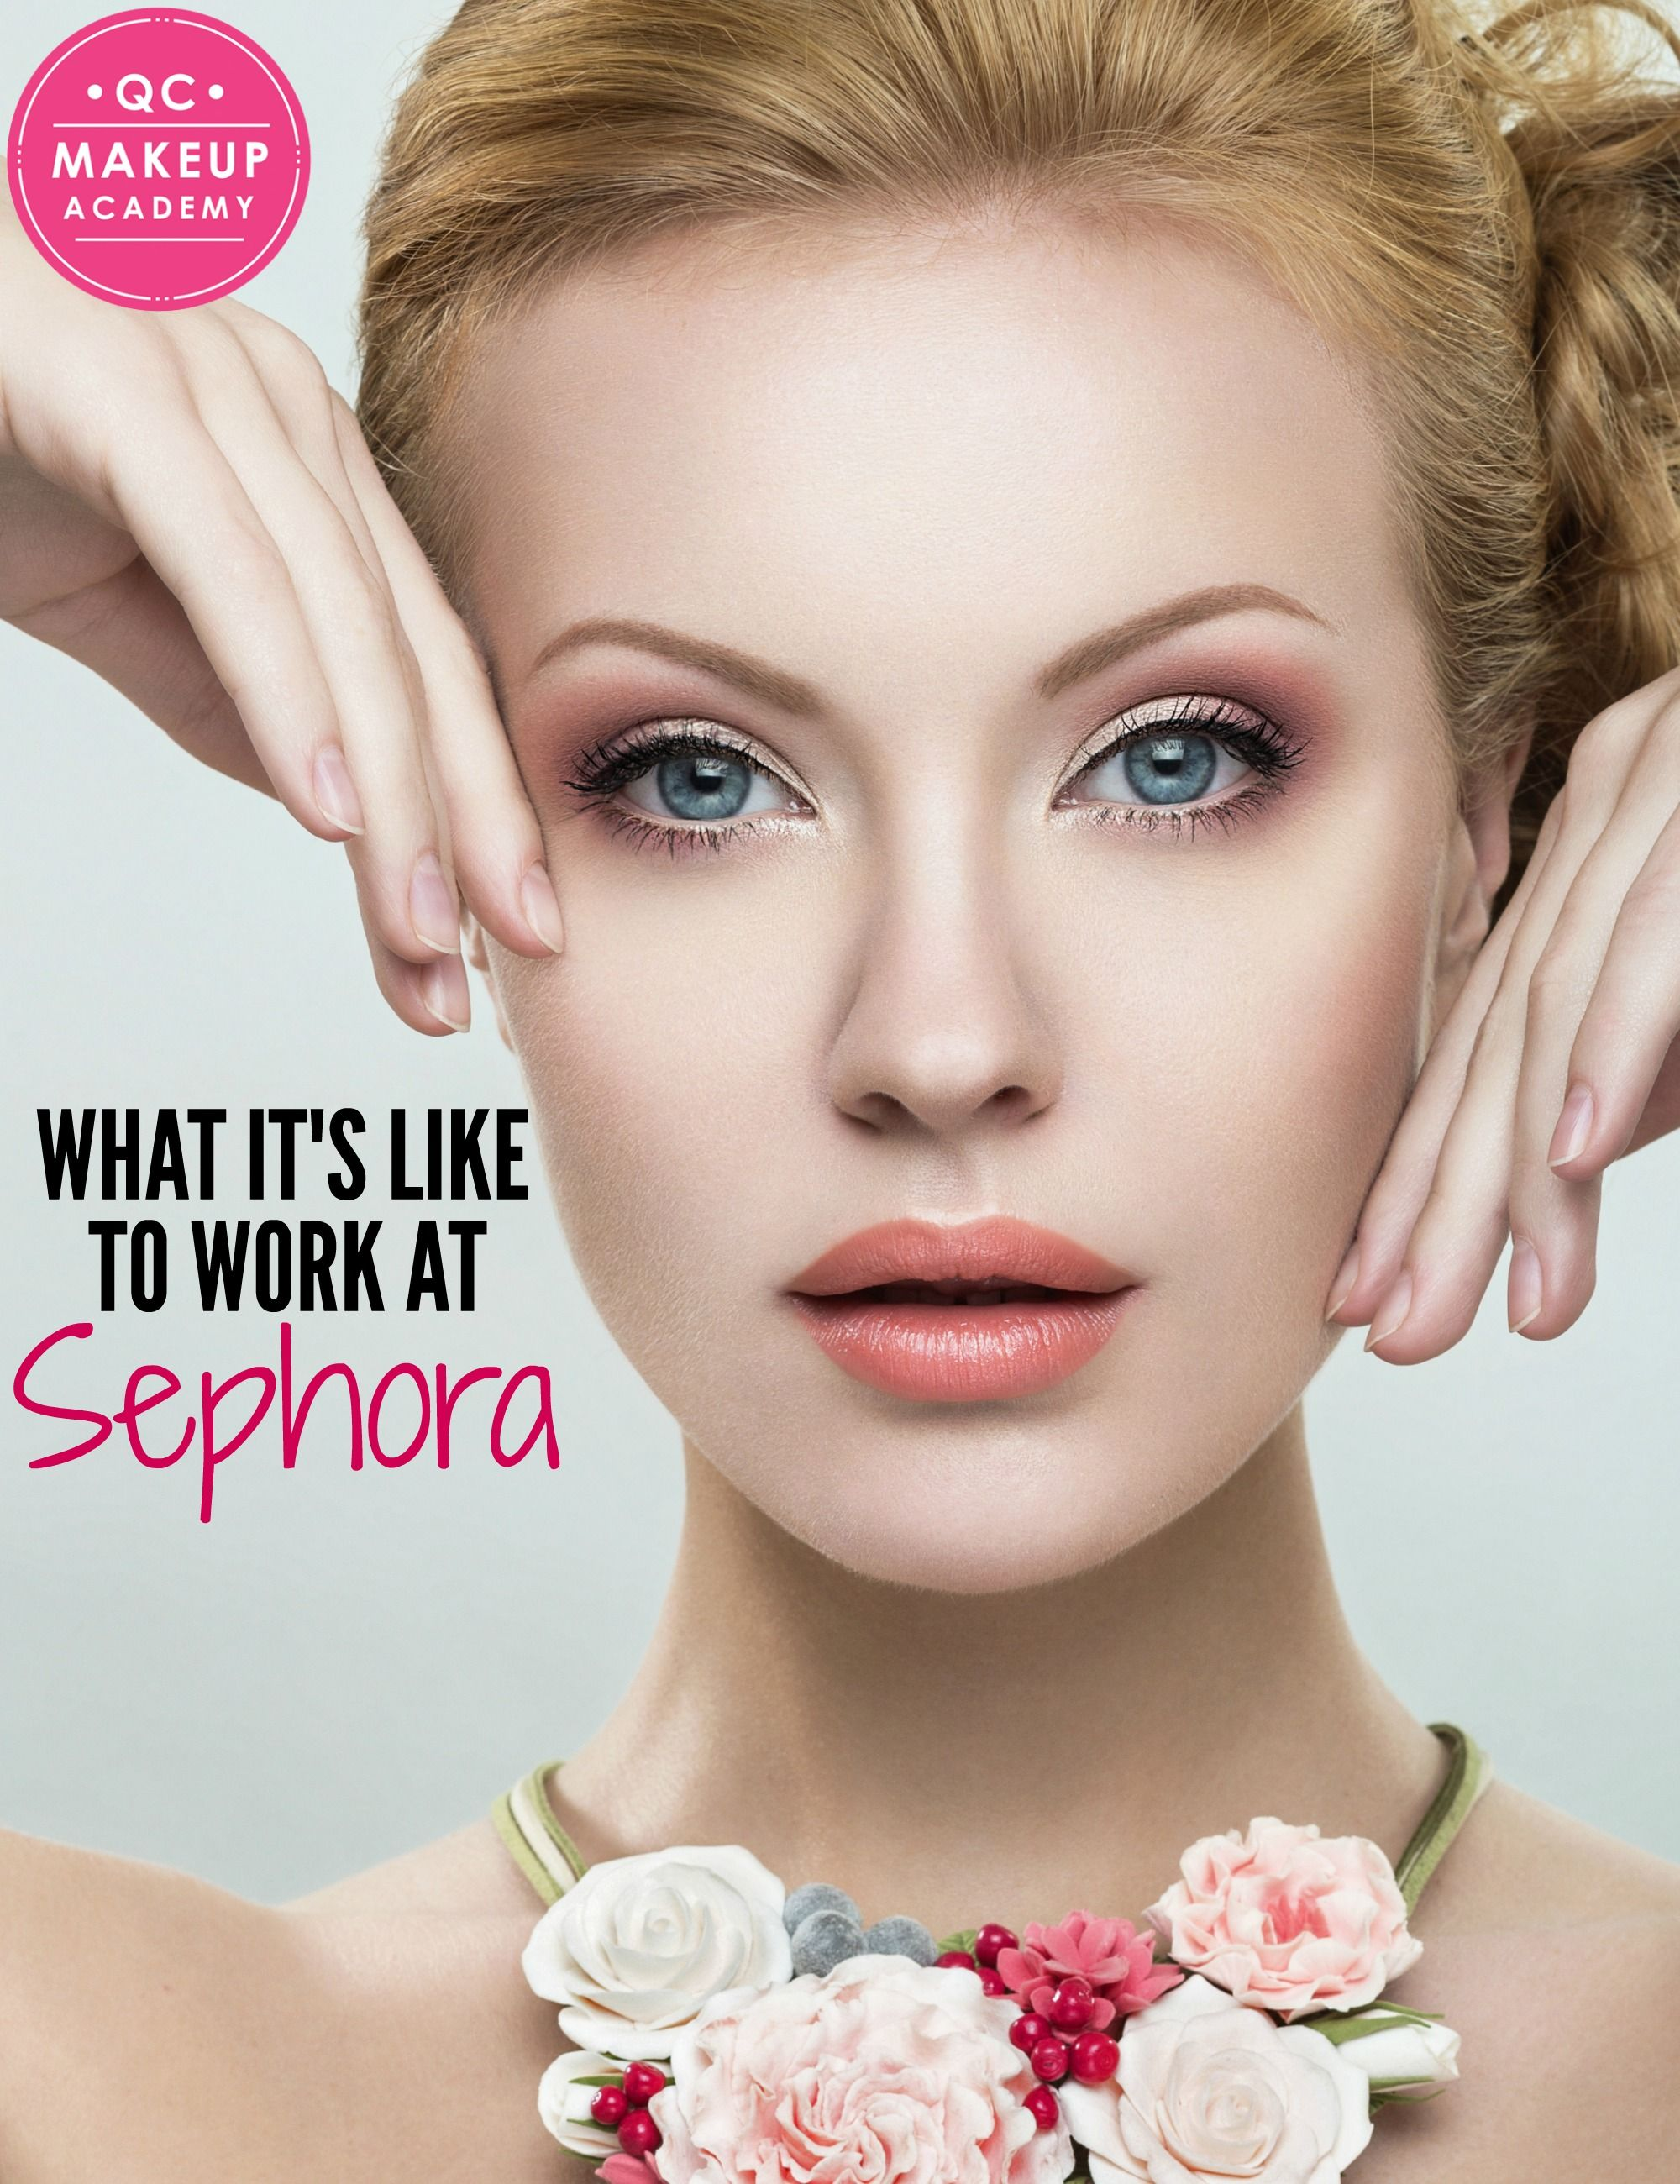 Get the inside scoop on what its really like to work at